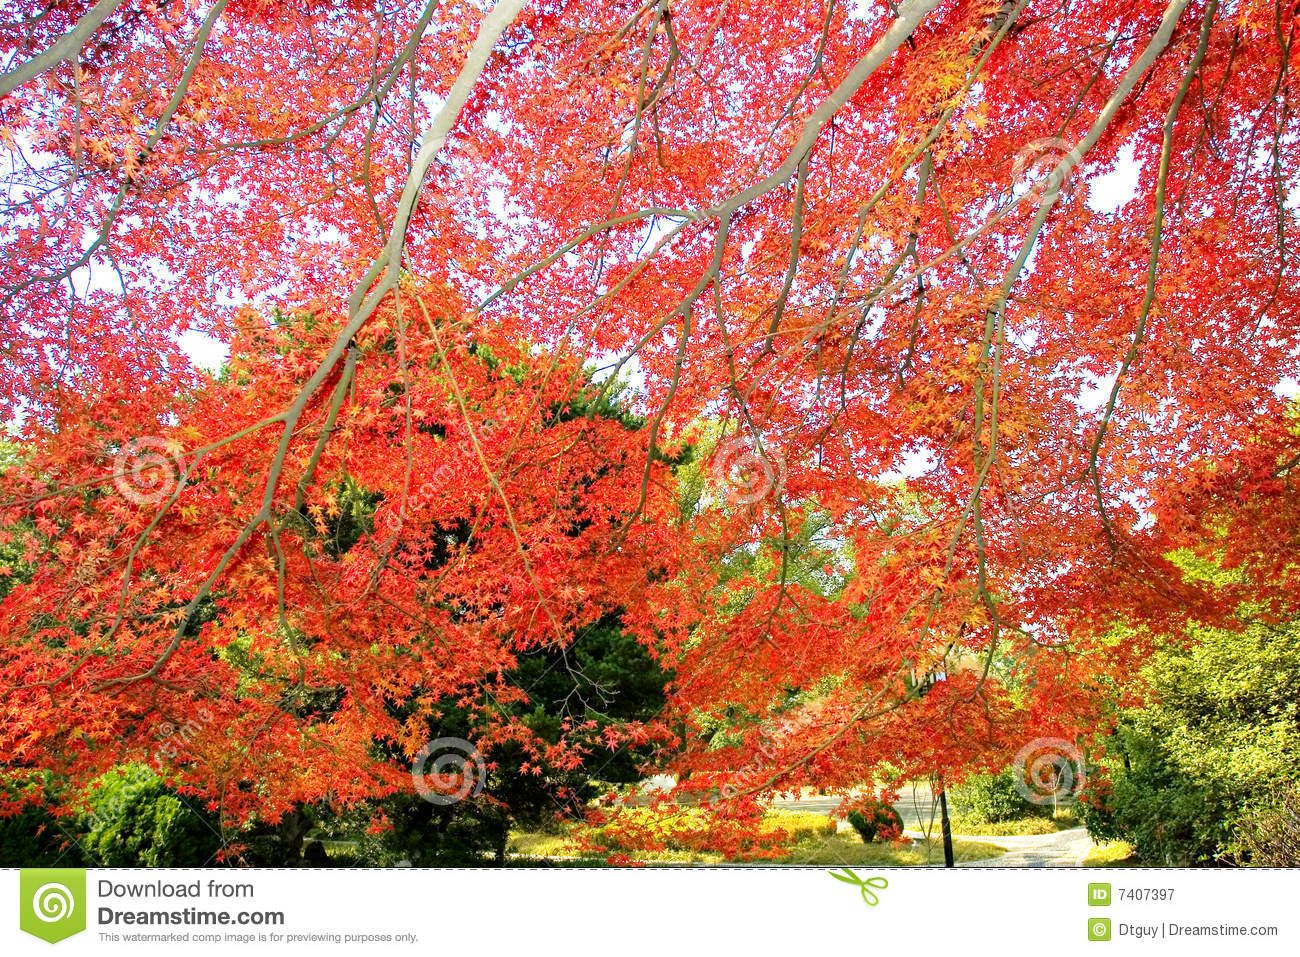 Autumn Maple Photograph By Novy additionally House On Slope also Small Log Cabin Floor Plans Also Rv Garage With Living Quarters Pleasing House Rv as well Hillside House Plans Rear View QYABqUgpKhOzeGWMgAMkSpulwwlcL5VwwgfzNjS00QI moreover Plans. on log cabin house plans steep slope